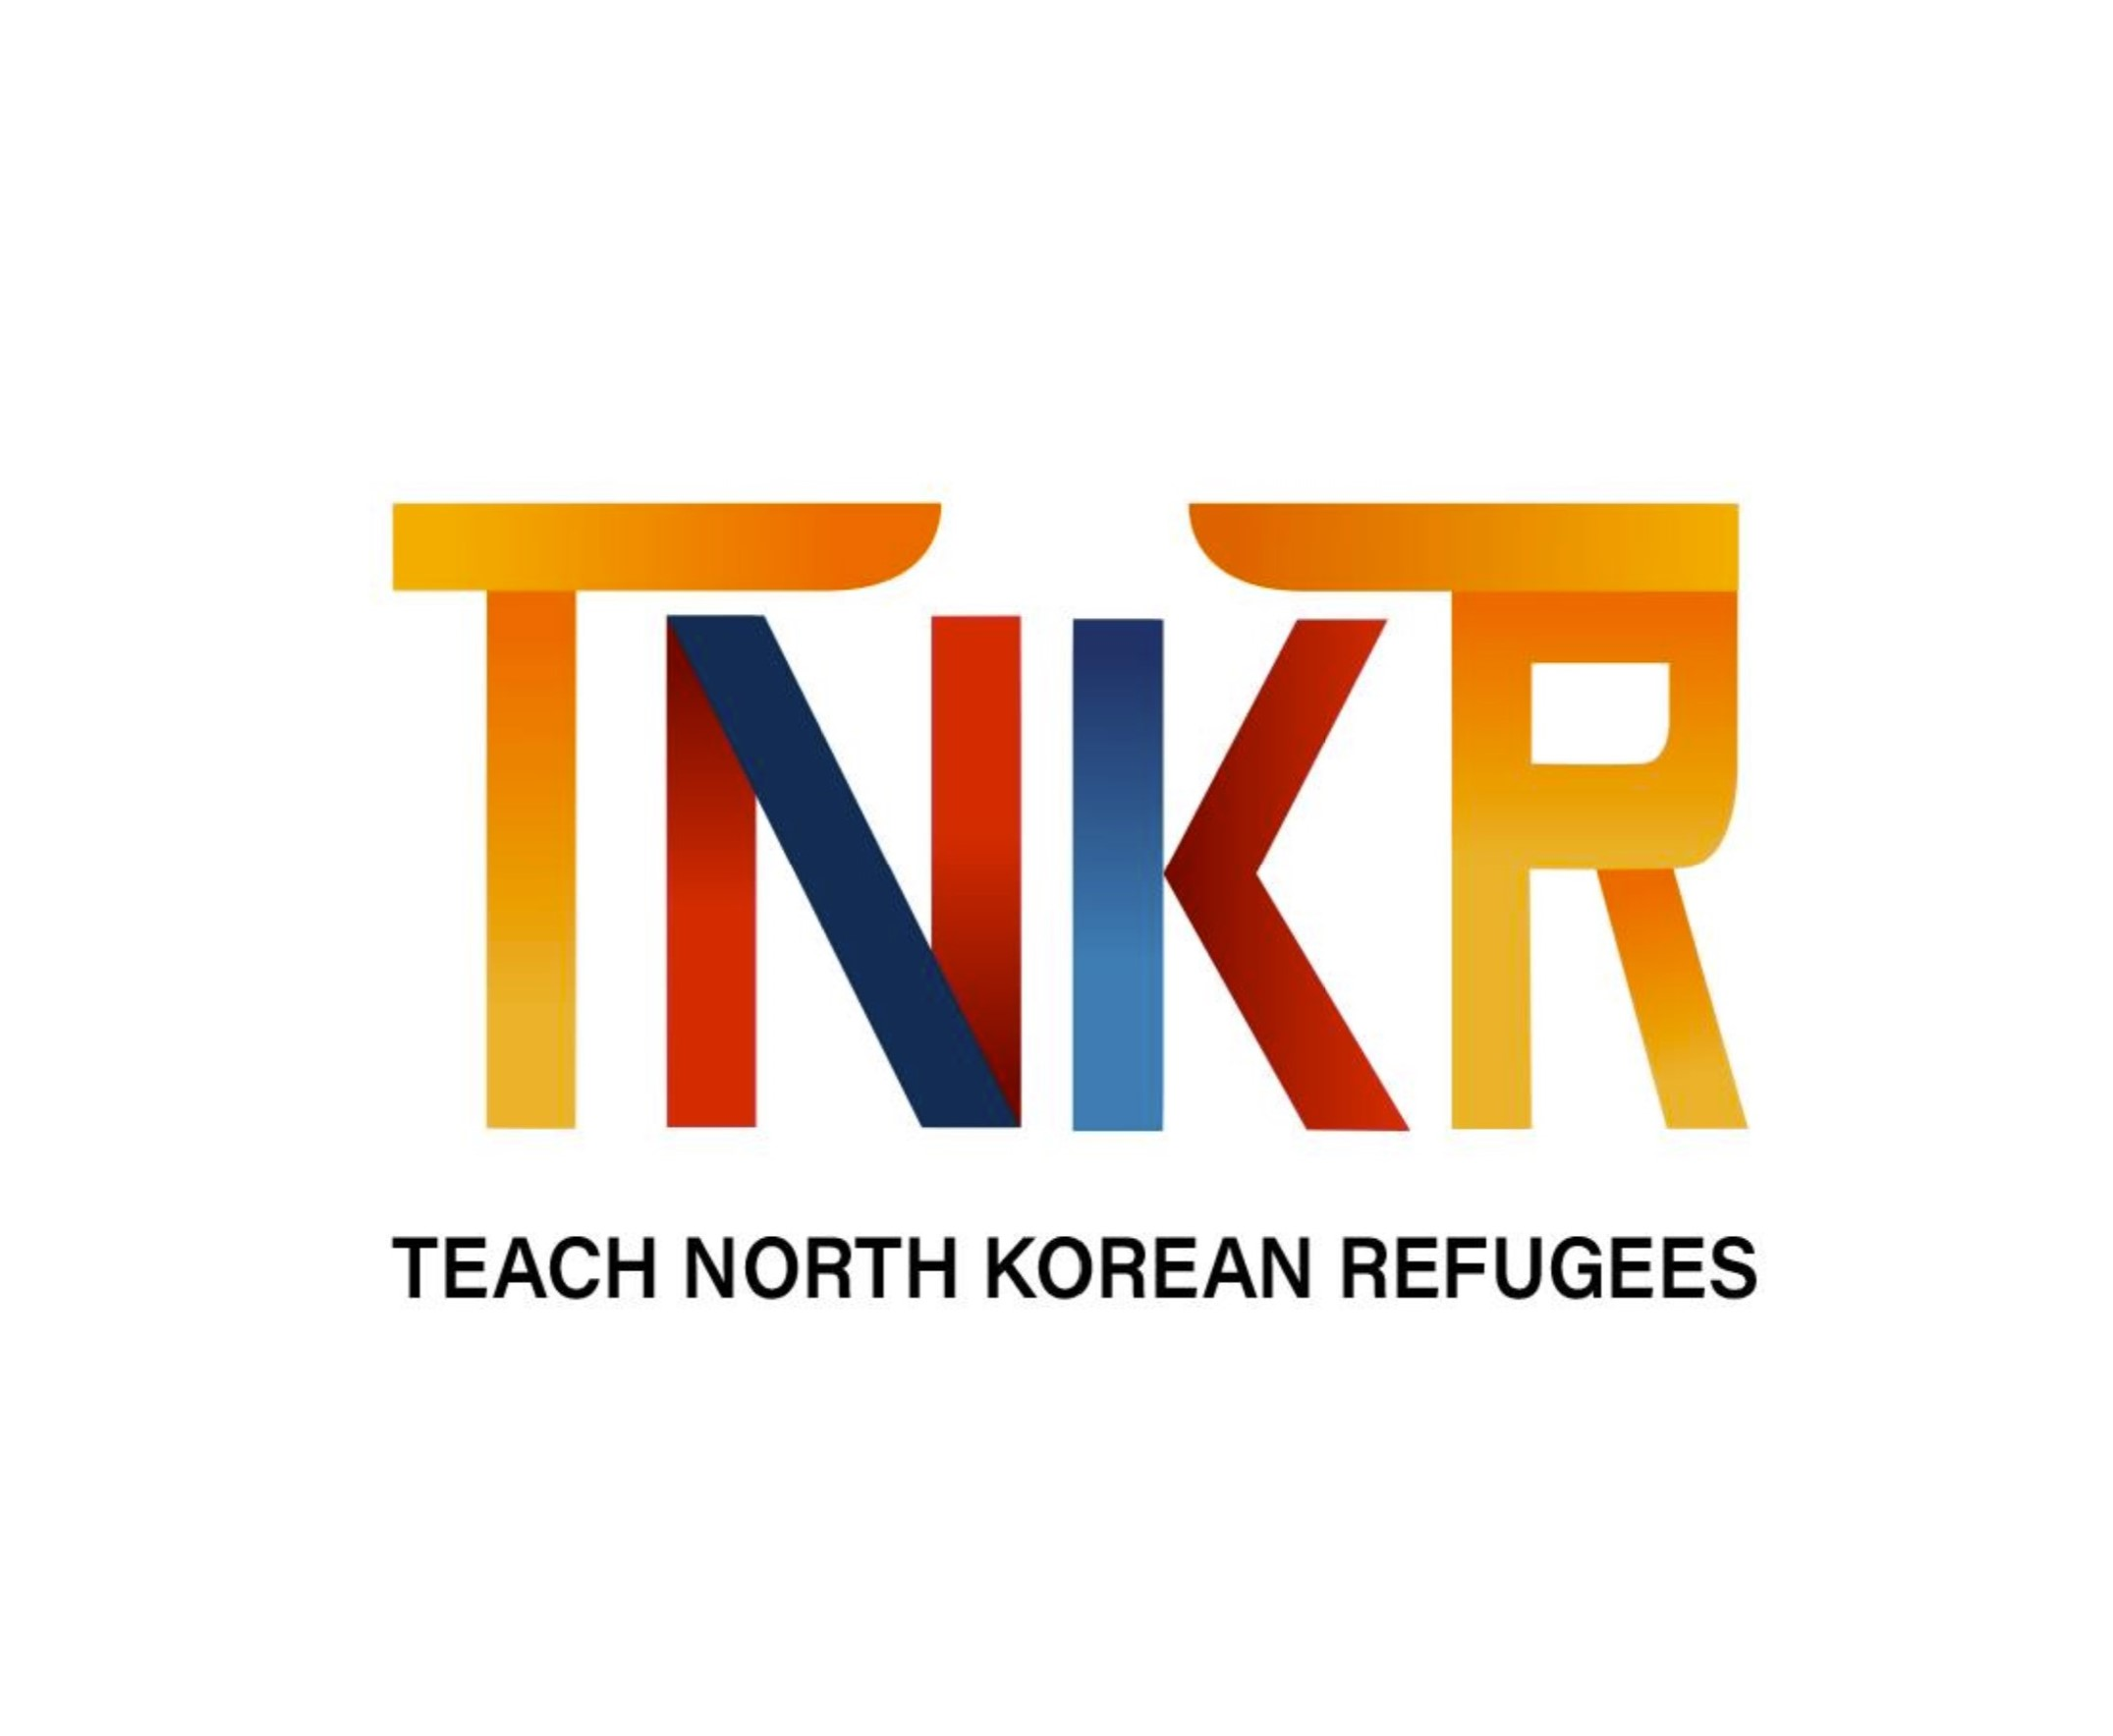 Teach North Korean Refugees